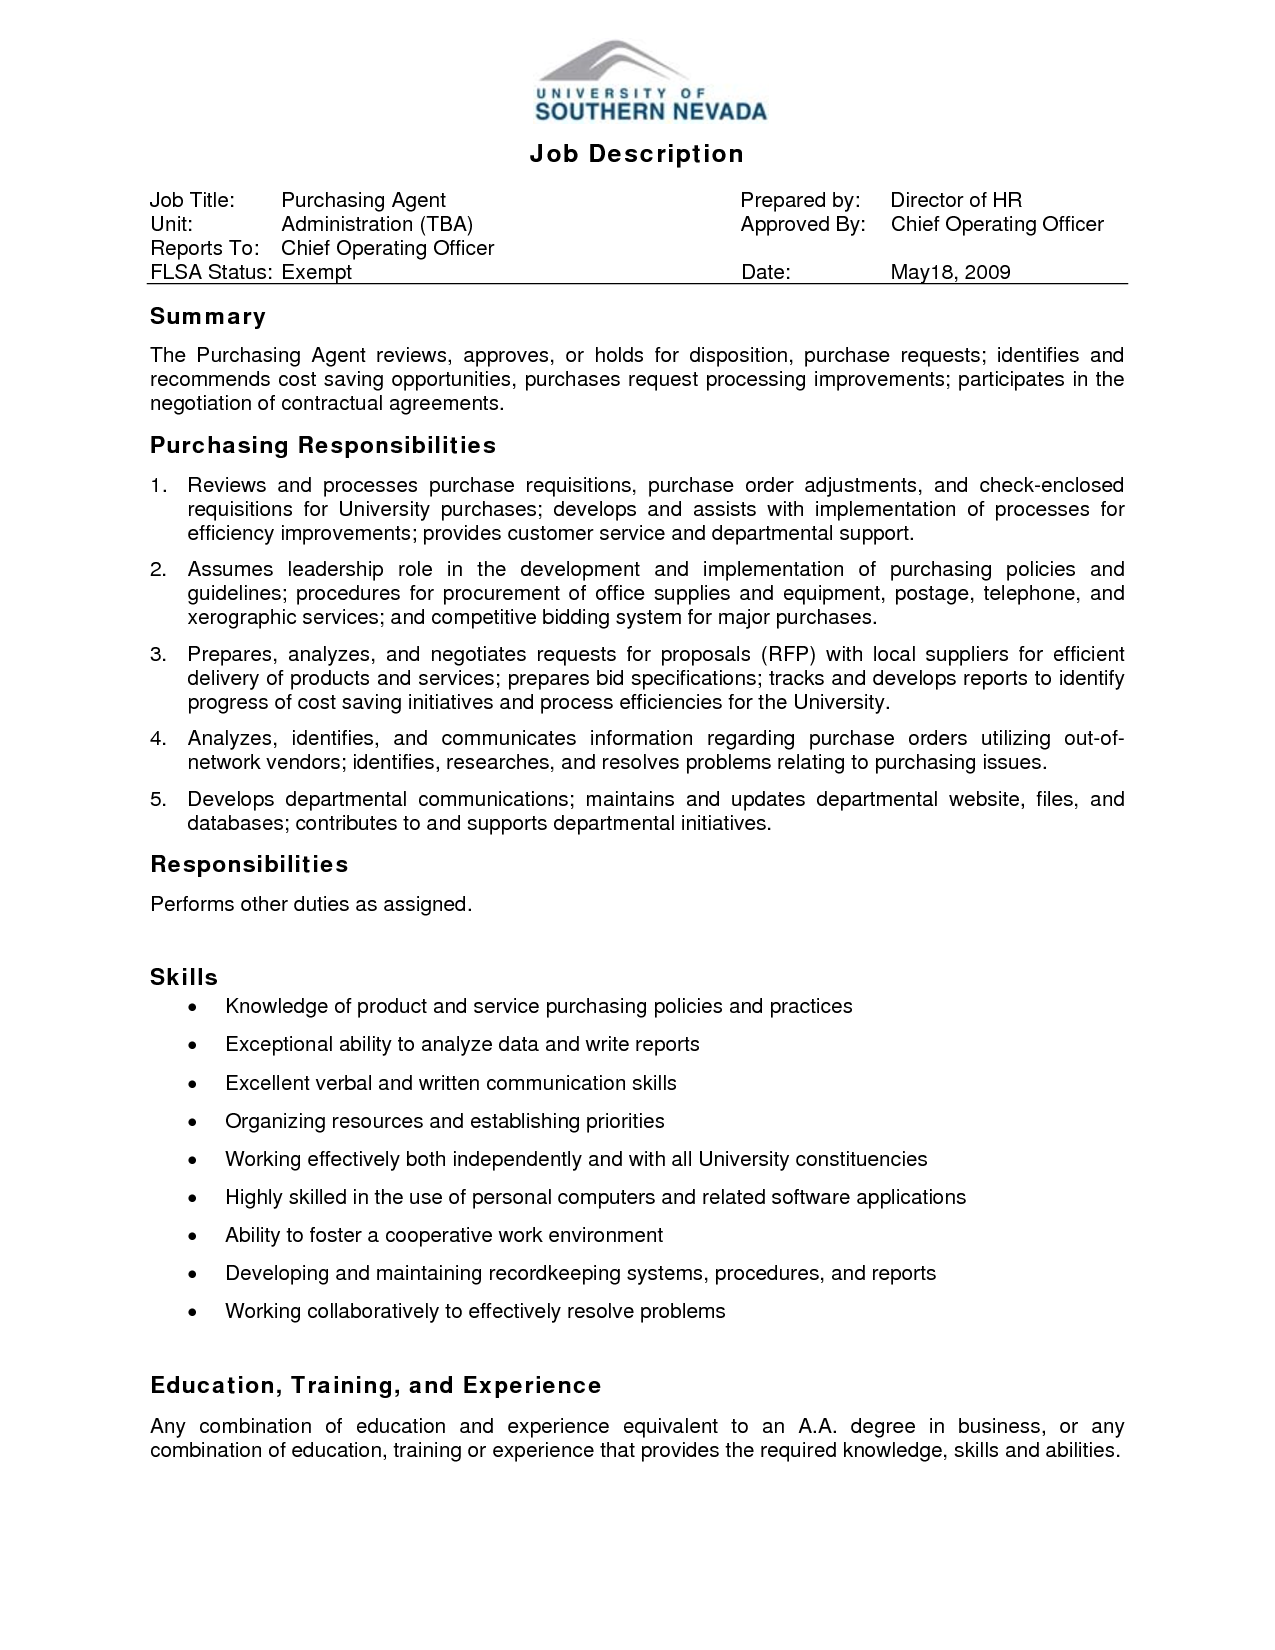 Administrative Assistant Duties Cover Letter Job Description Administrative  Assistant